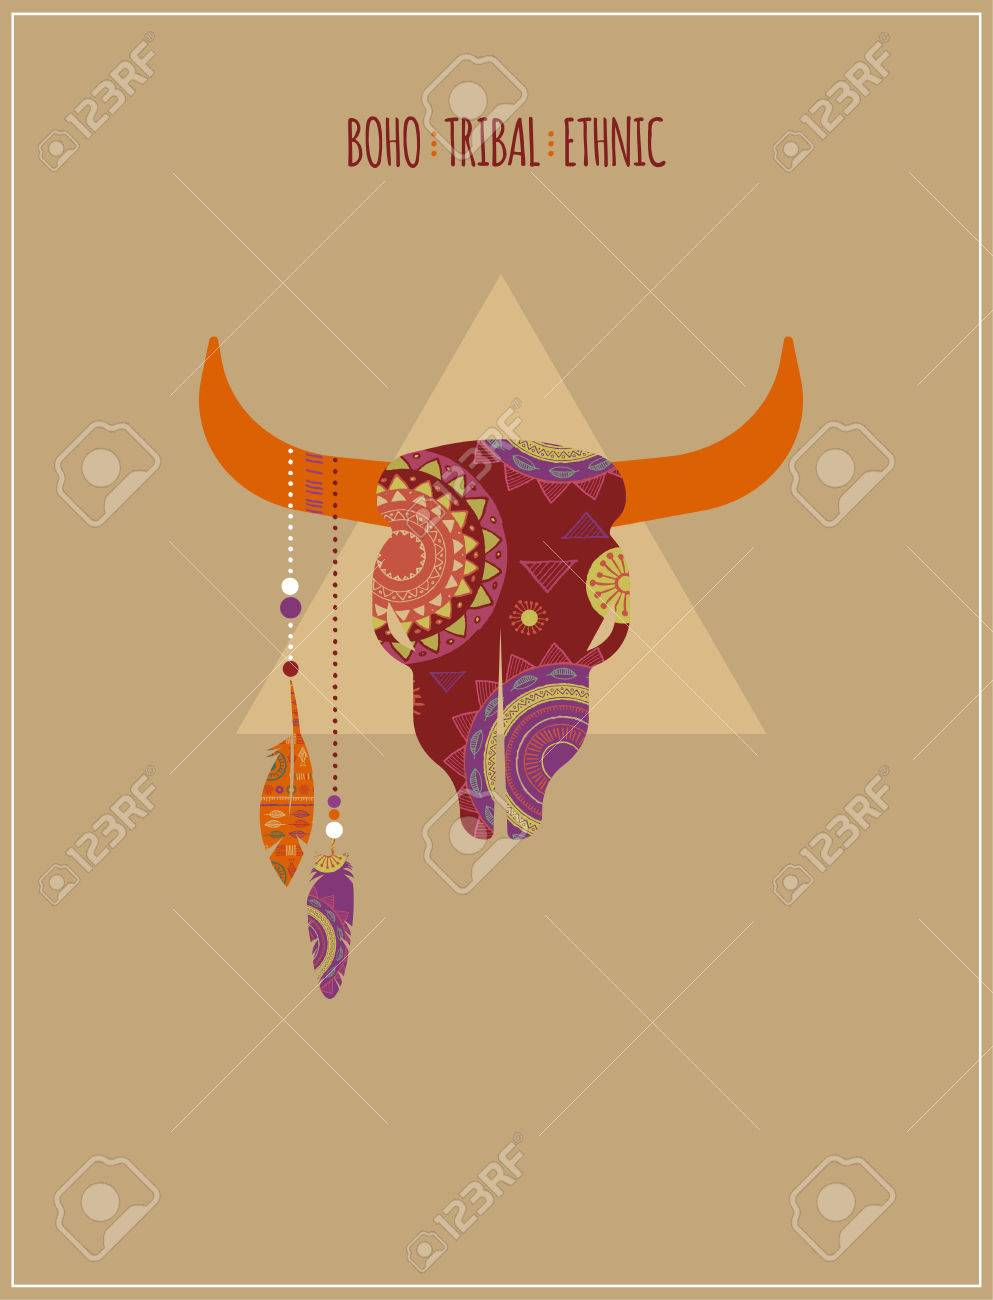 Bohemian, Tribal, Ethnic Background With Bull Skull Royalty Free ...